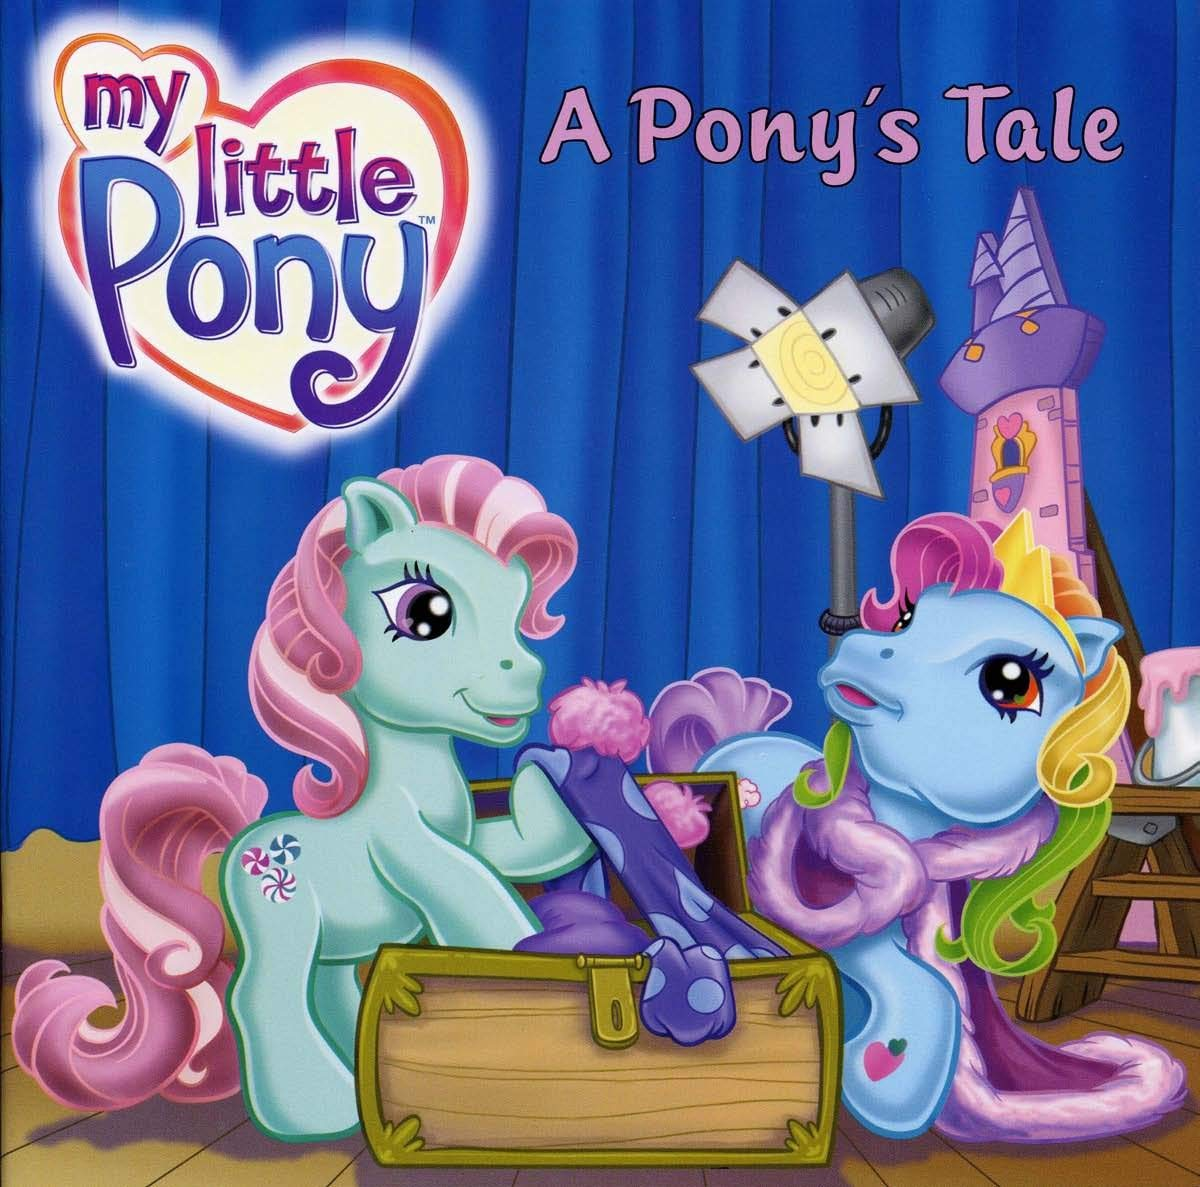 My Little Pony A Pony's Tale: Classic children's picture books